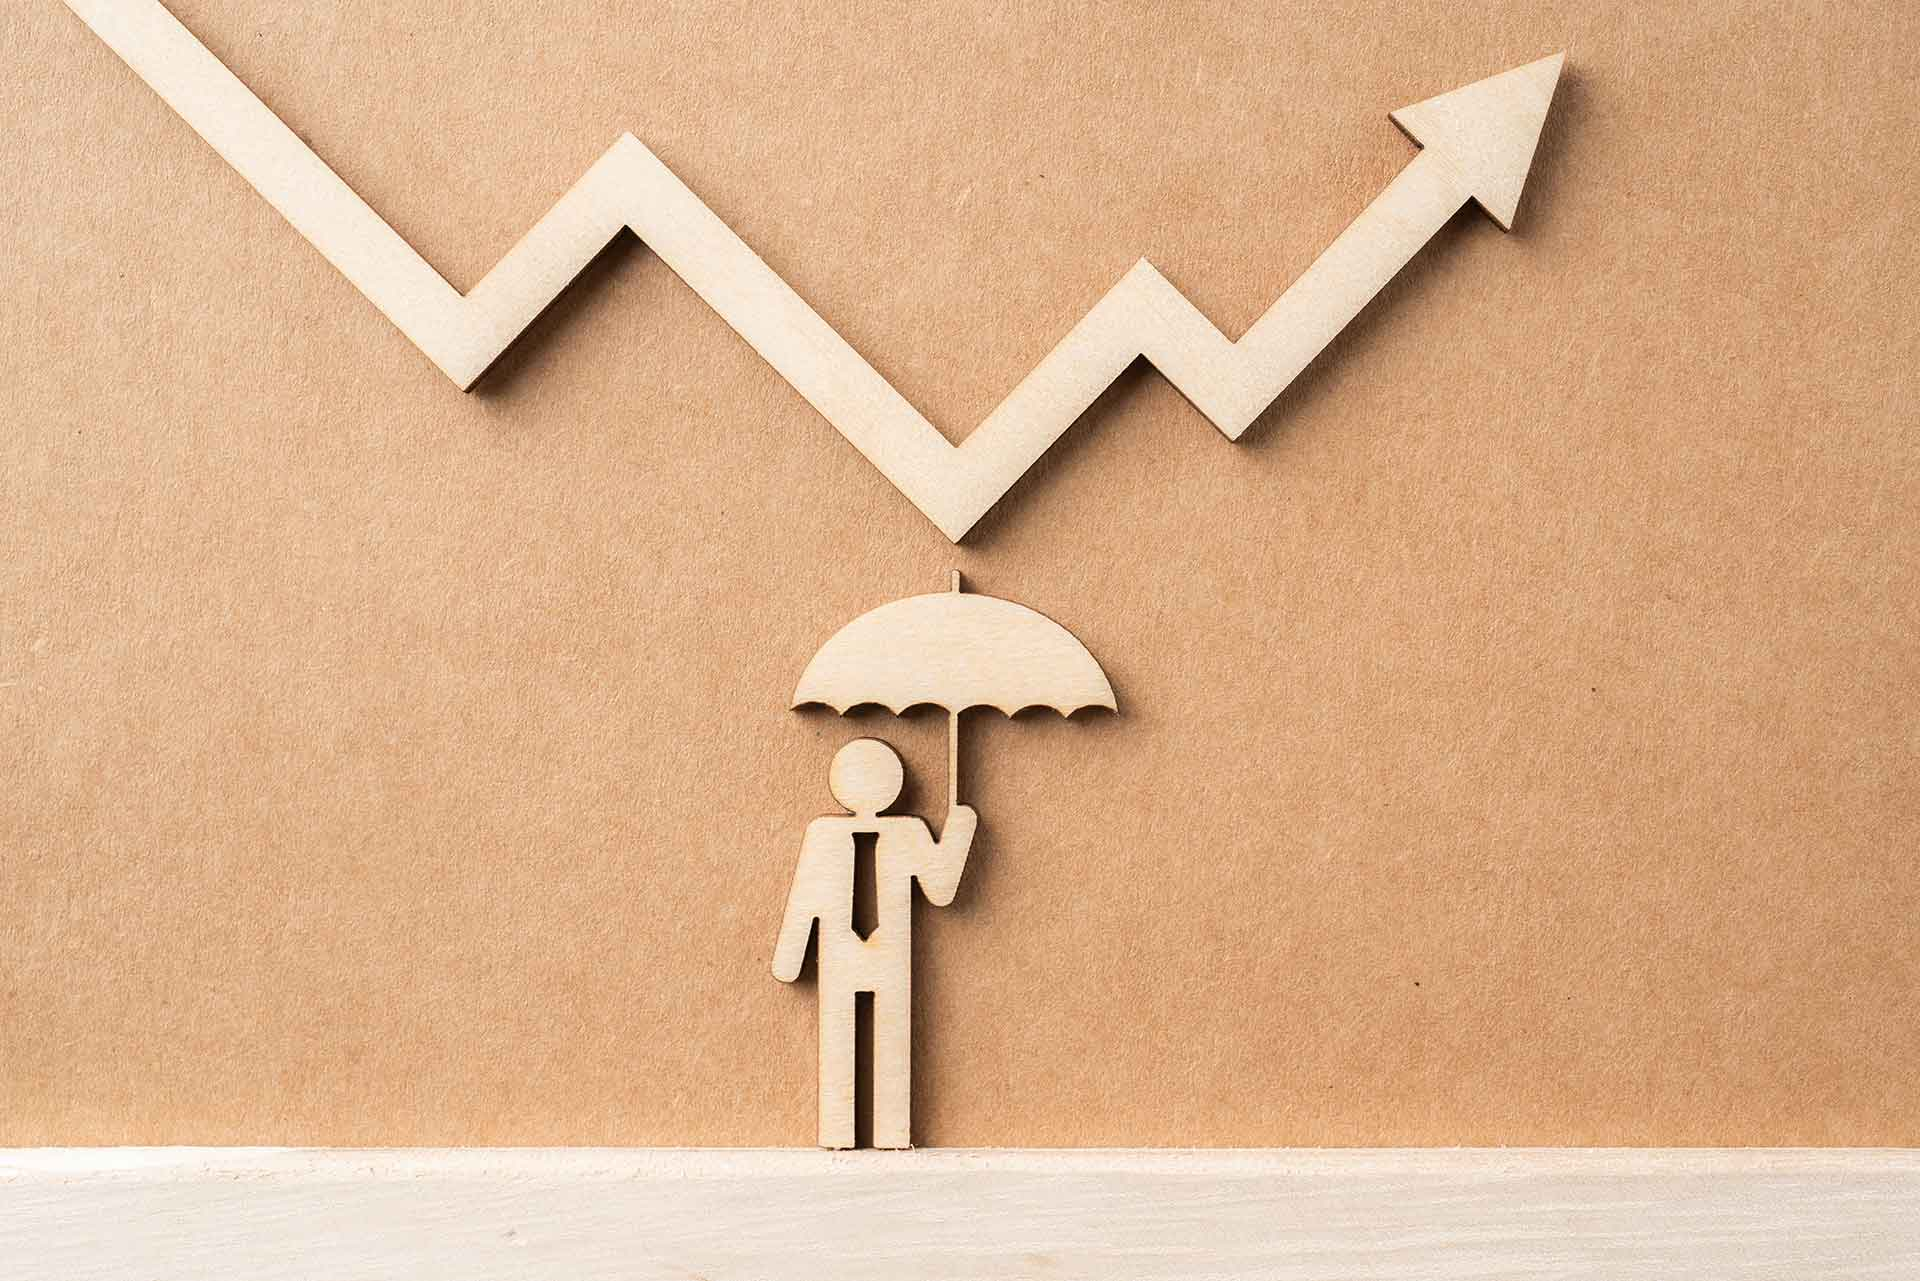 Should you consider using an umbrella company?